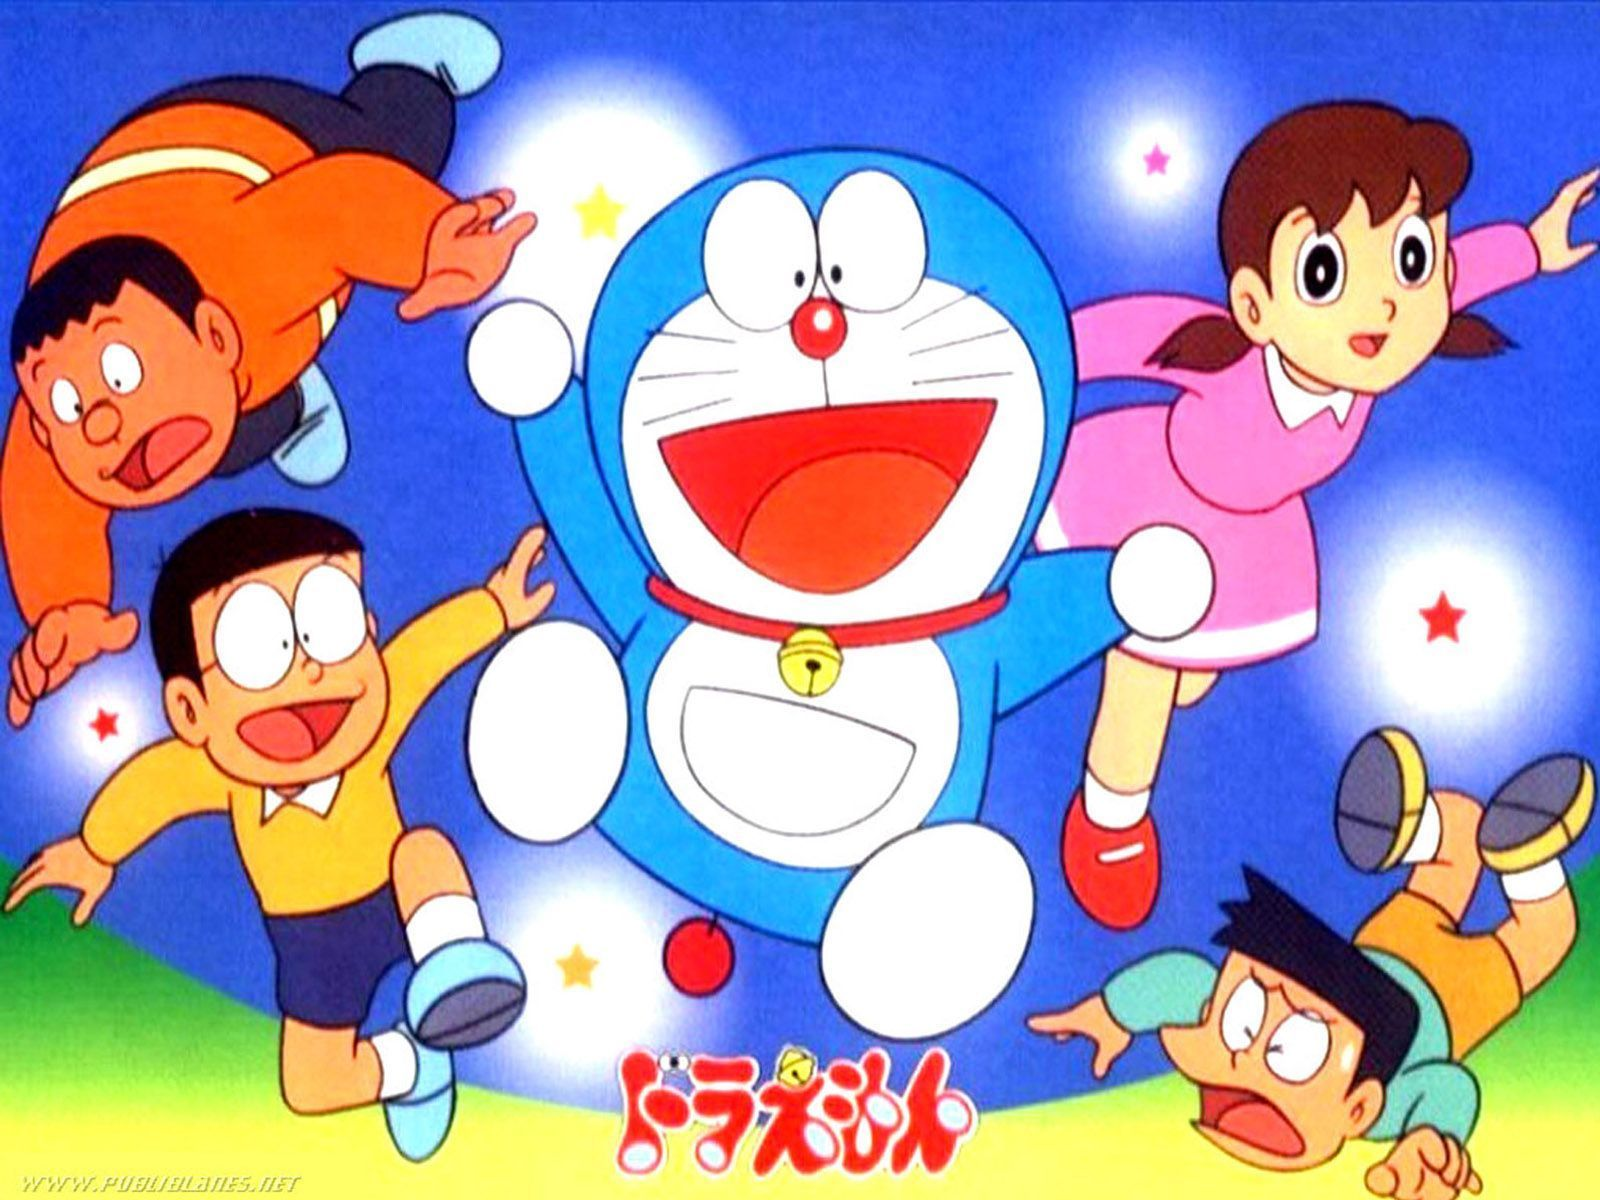 Wallpaper Doraemon Menangis Di 2020